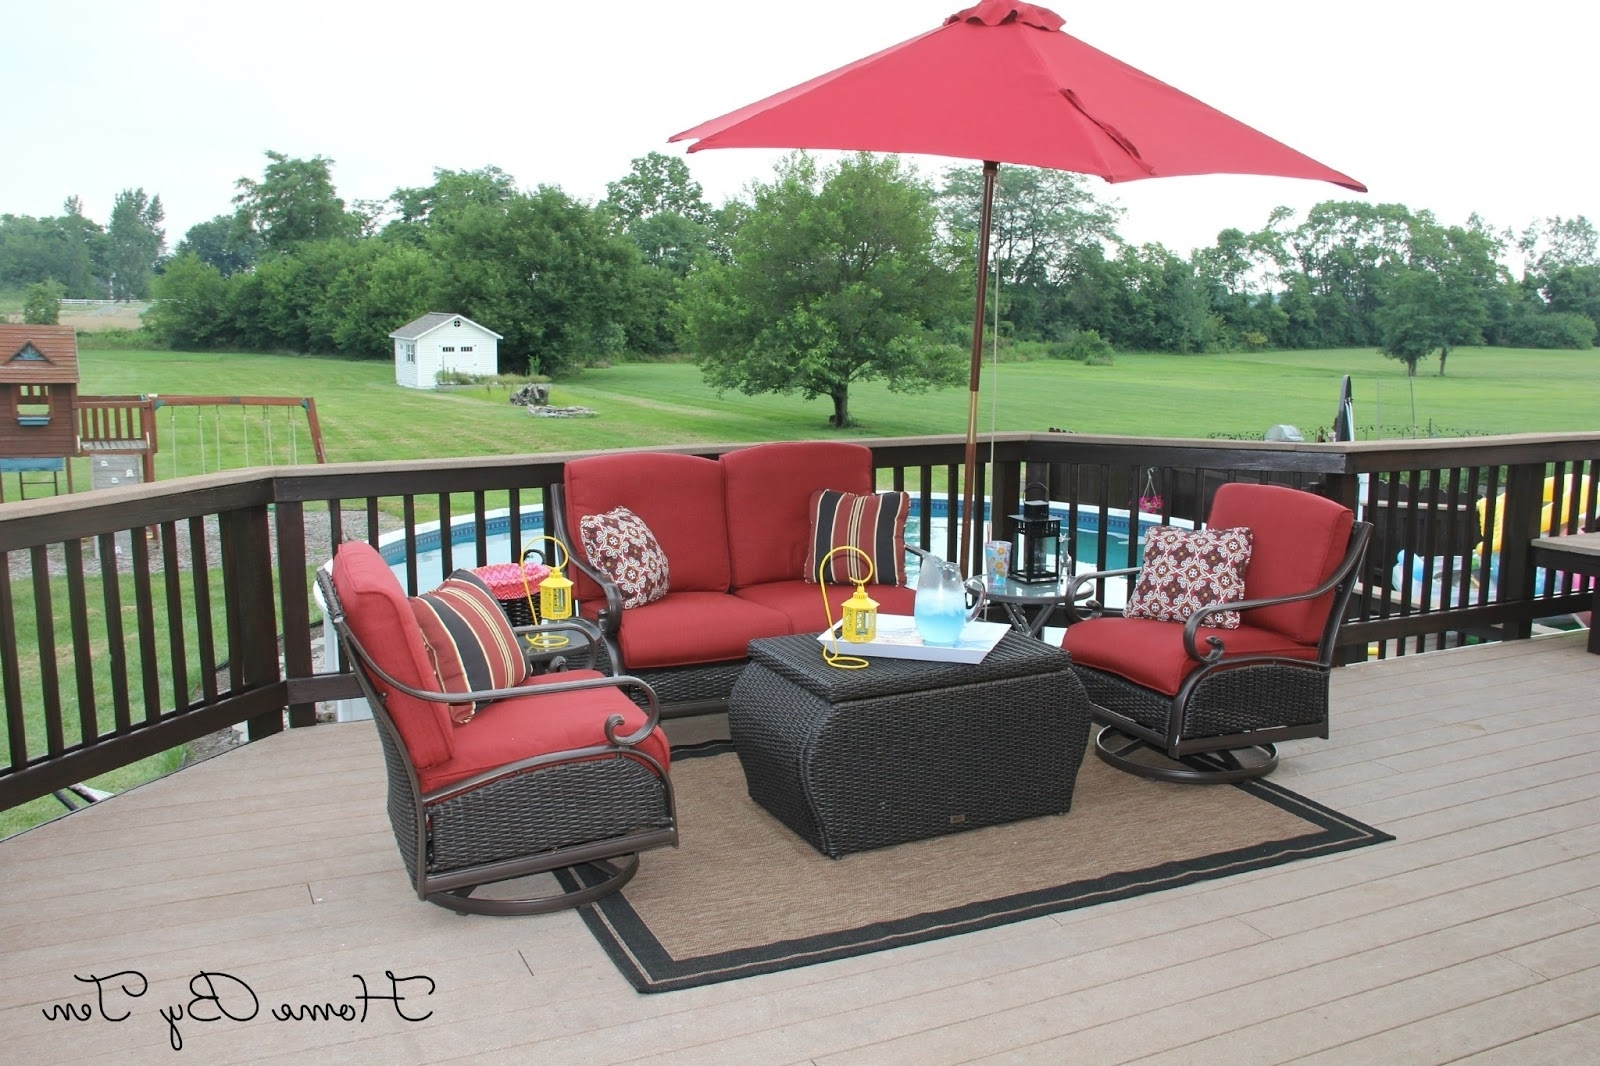 Hometen: Patio Conversation Set And Outdoor Rug Home Depot/lowes Pertaining To Newest Patio Conversation Sets At Home Depot (View 16 of 20)